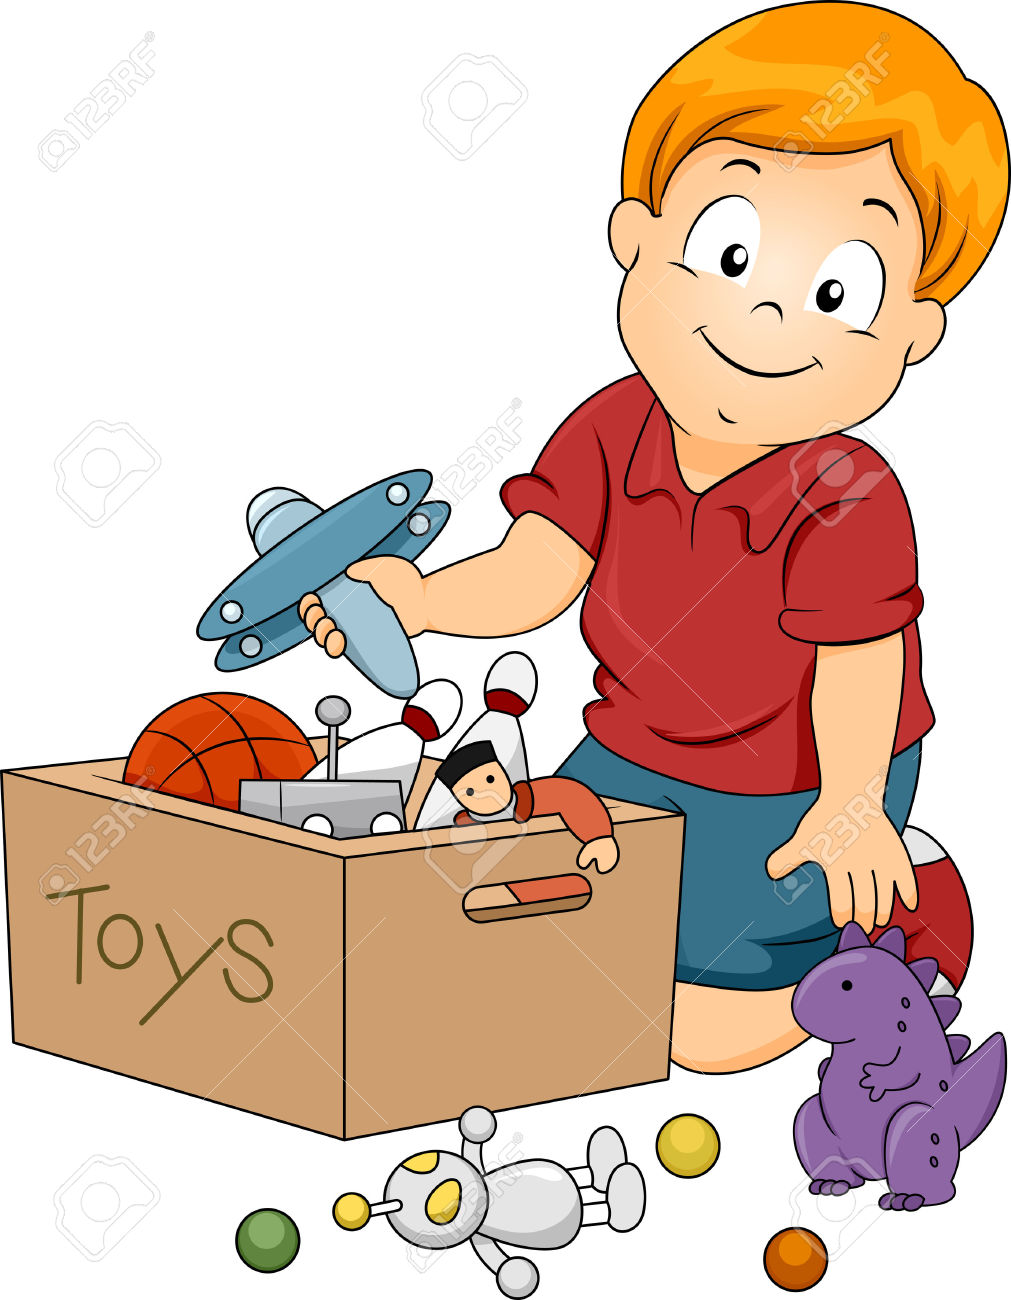 Put toys away clipart 4 » Clipart Station.